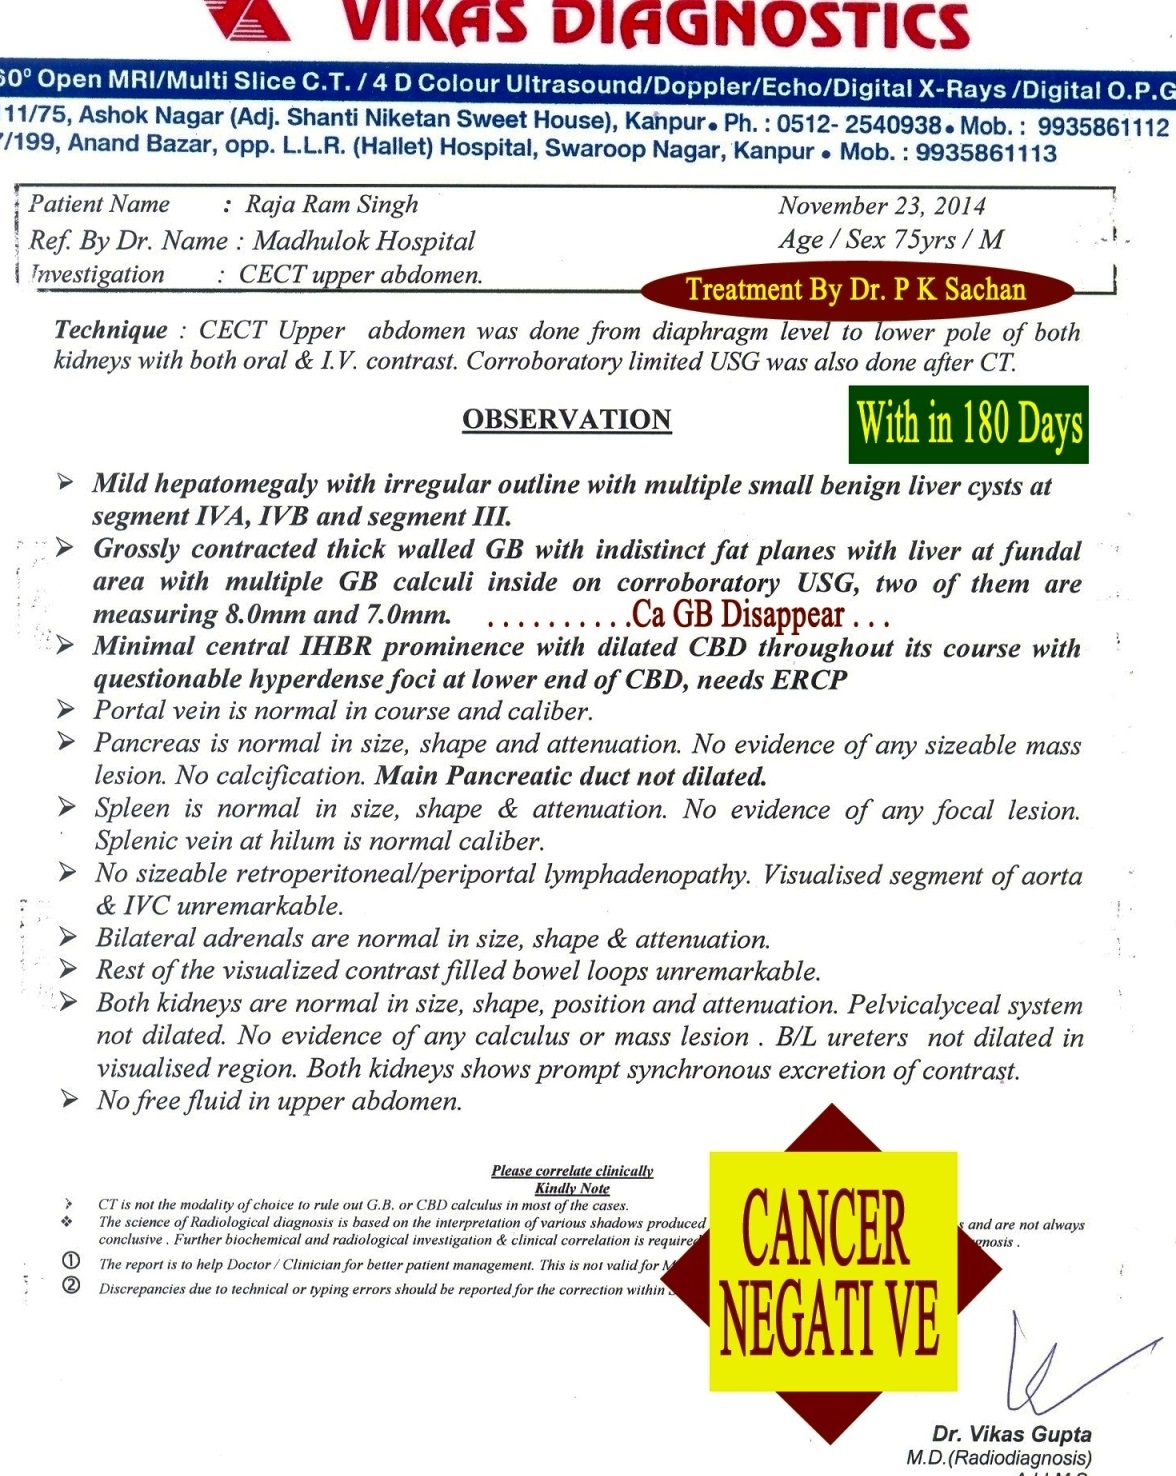 Welcome To integrated Therapy Research Center (ITRC), Kanpur